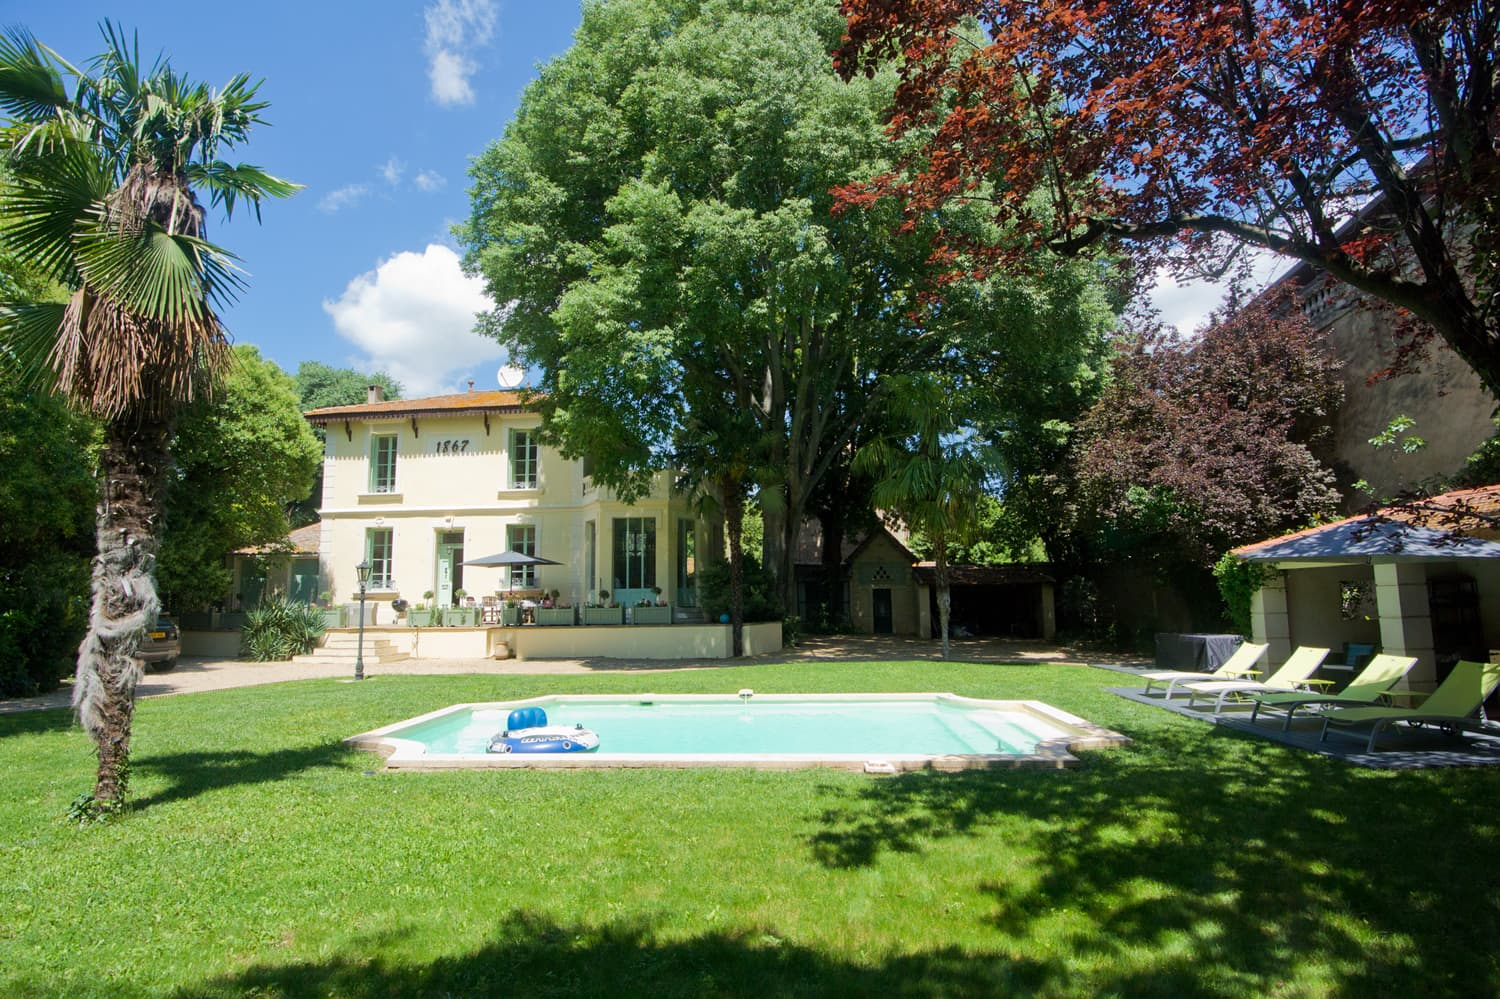 Rental home in Languedoc with private, heated pool